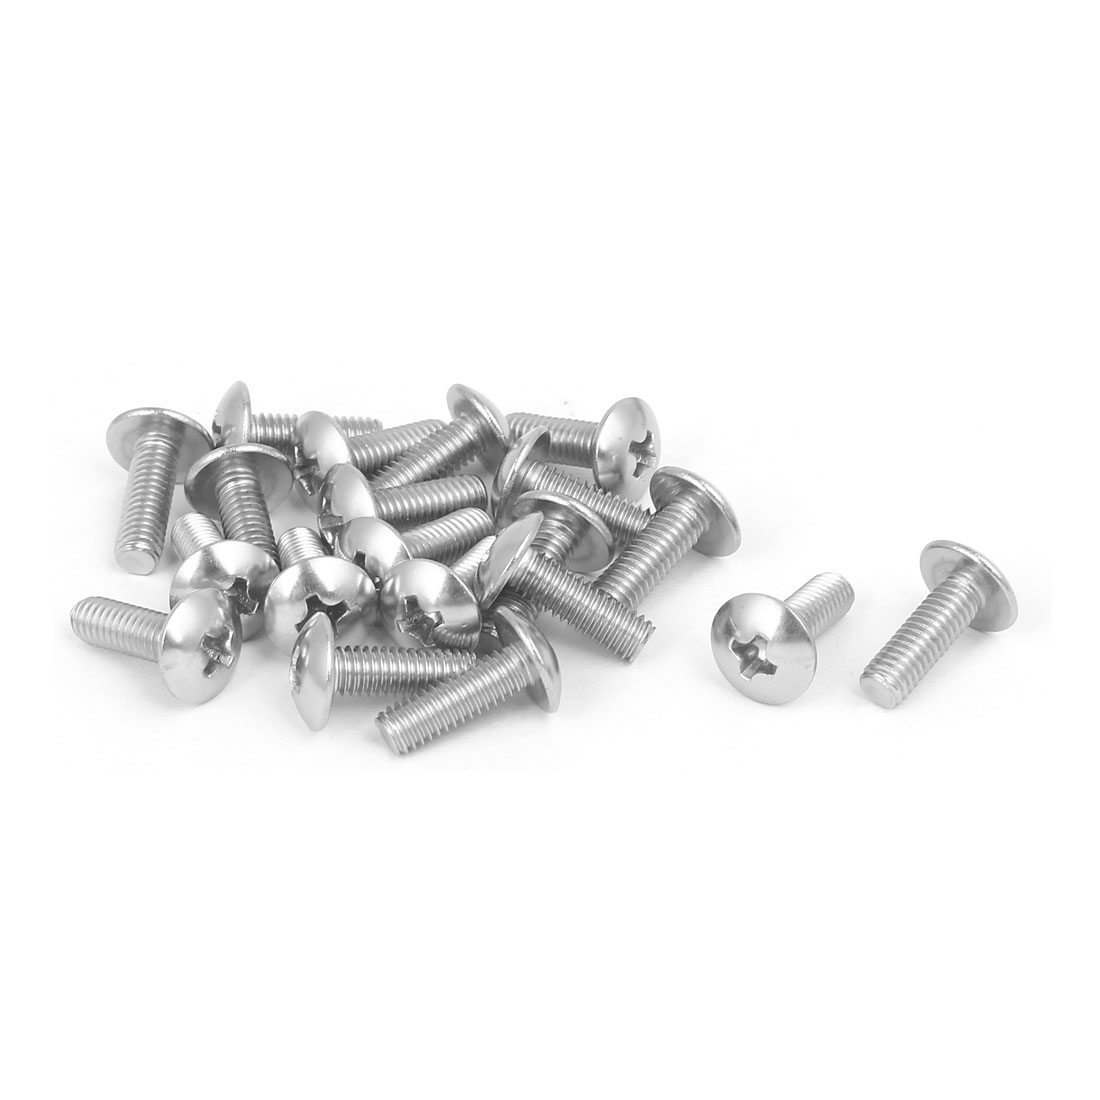 M4x12mm 316 Stainless Steel Truss Phillips Head Machine Screw Silver Tone 20pcs